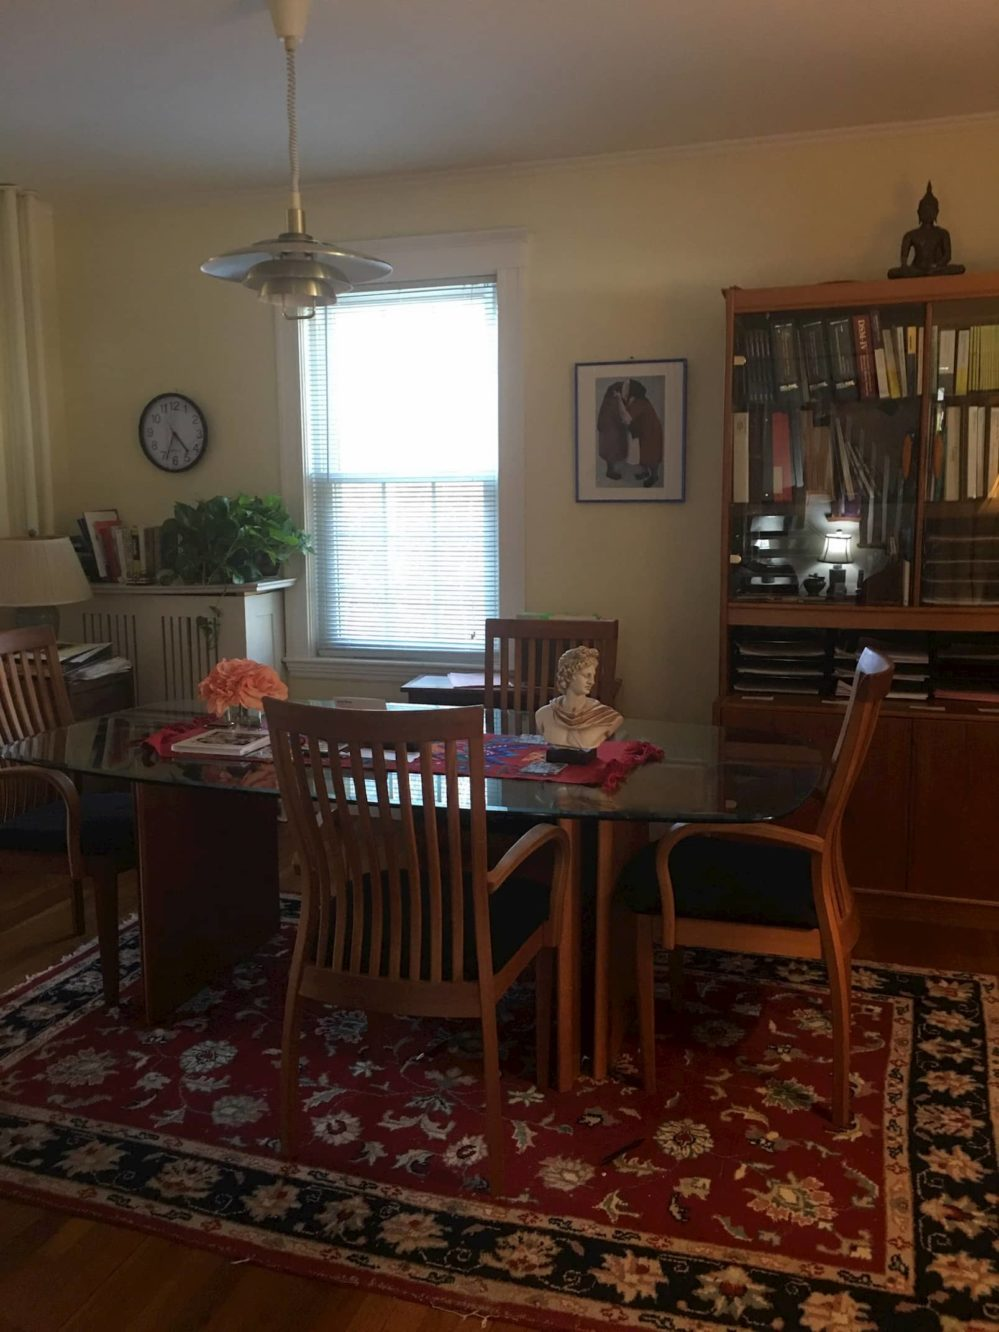 An Image of the mediation Room